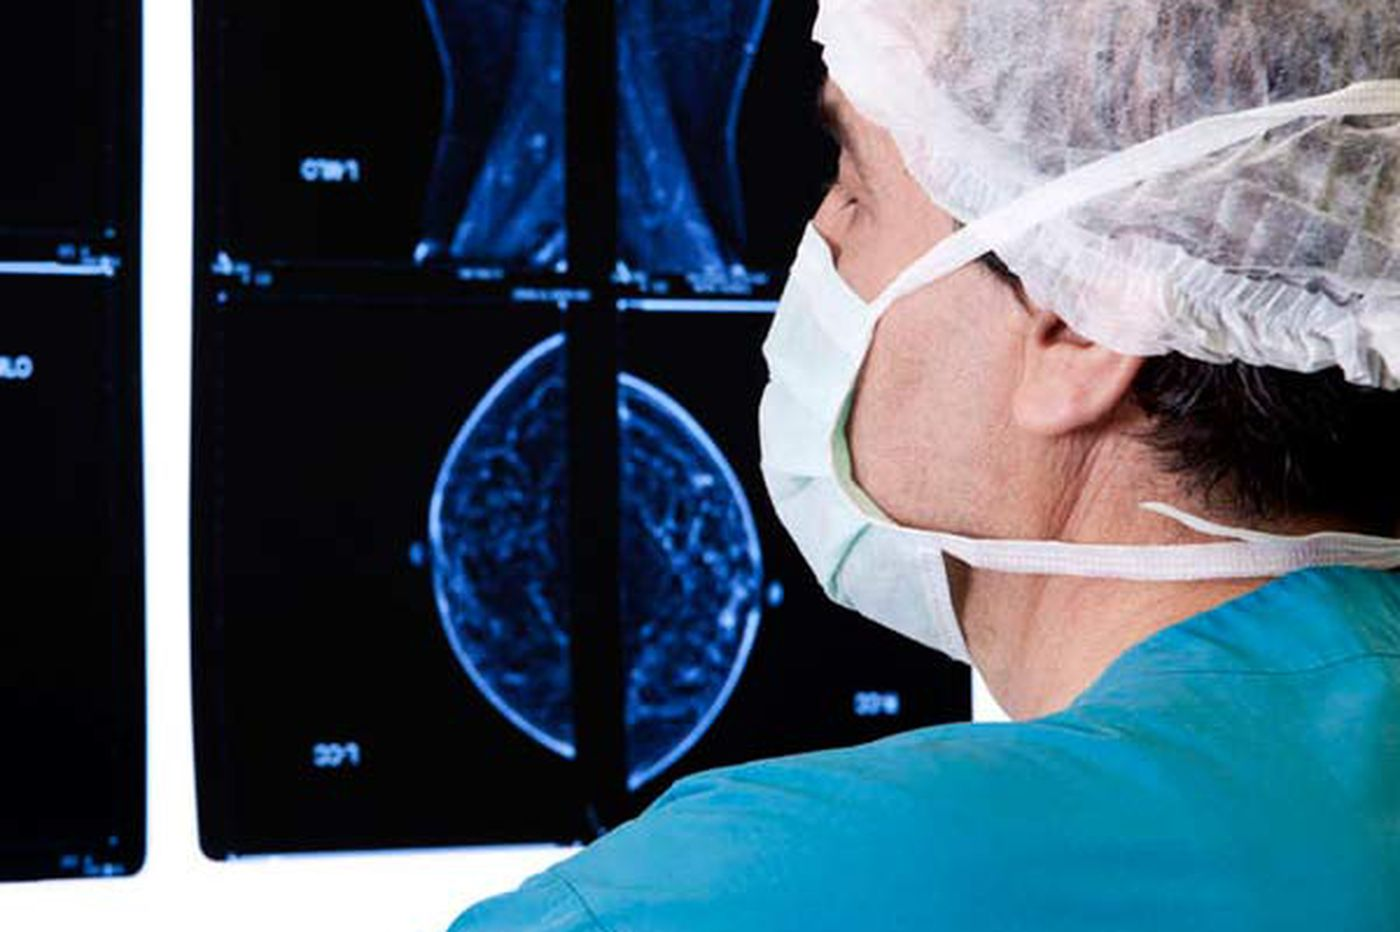 Pa. mandates 3-D mammogram coverage